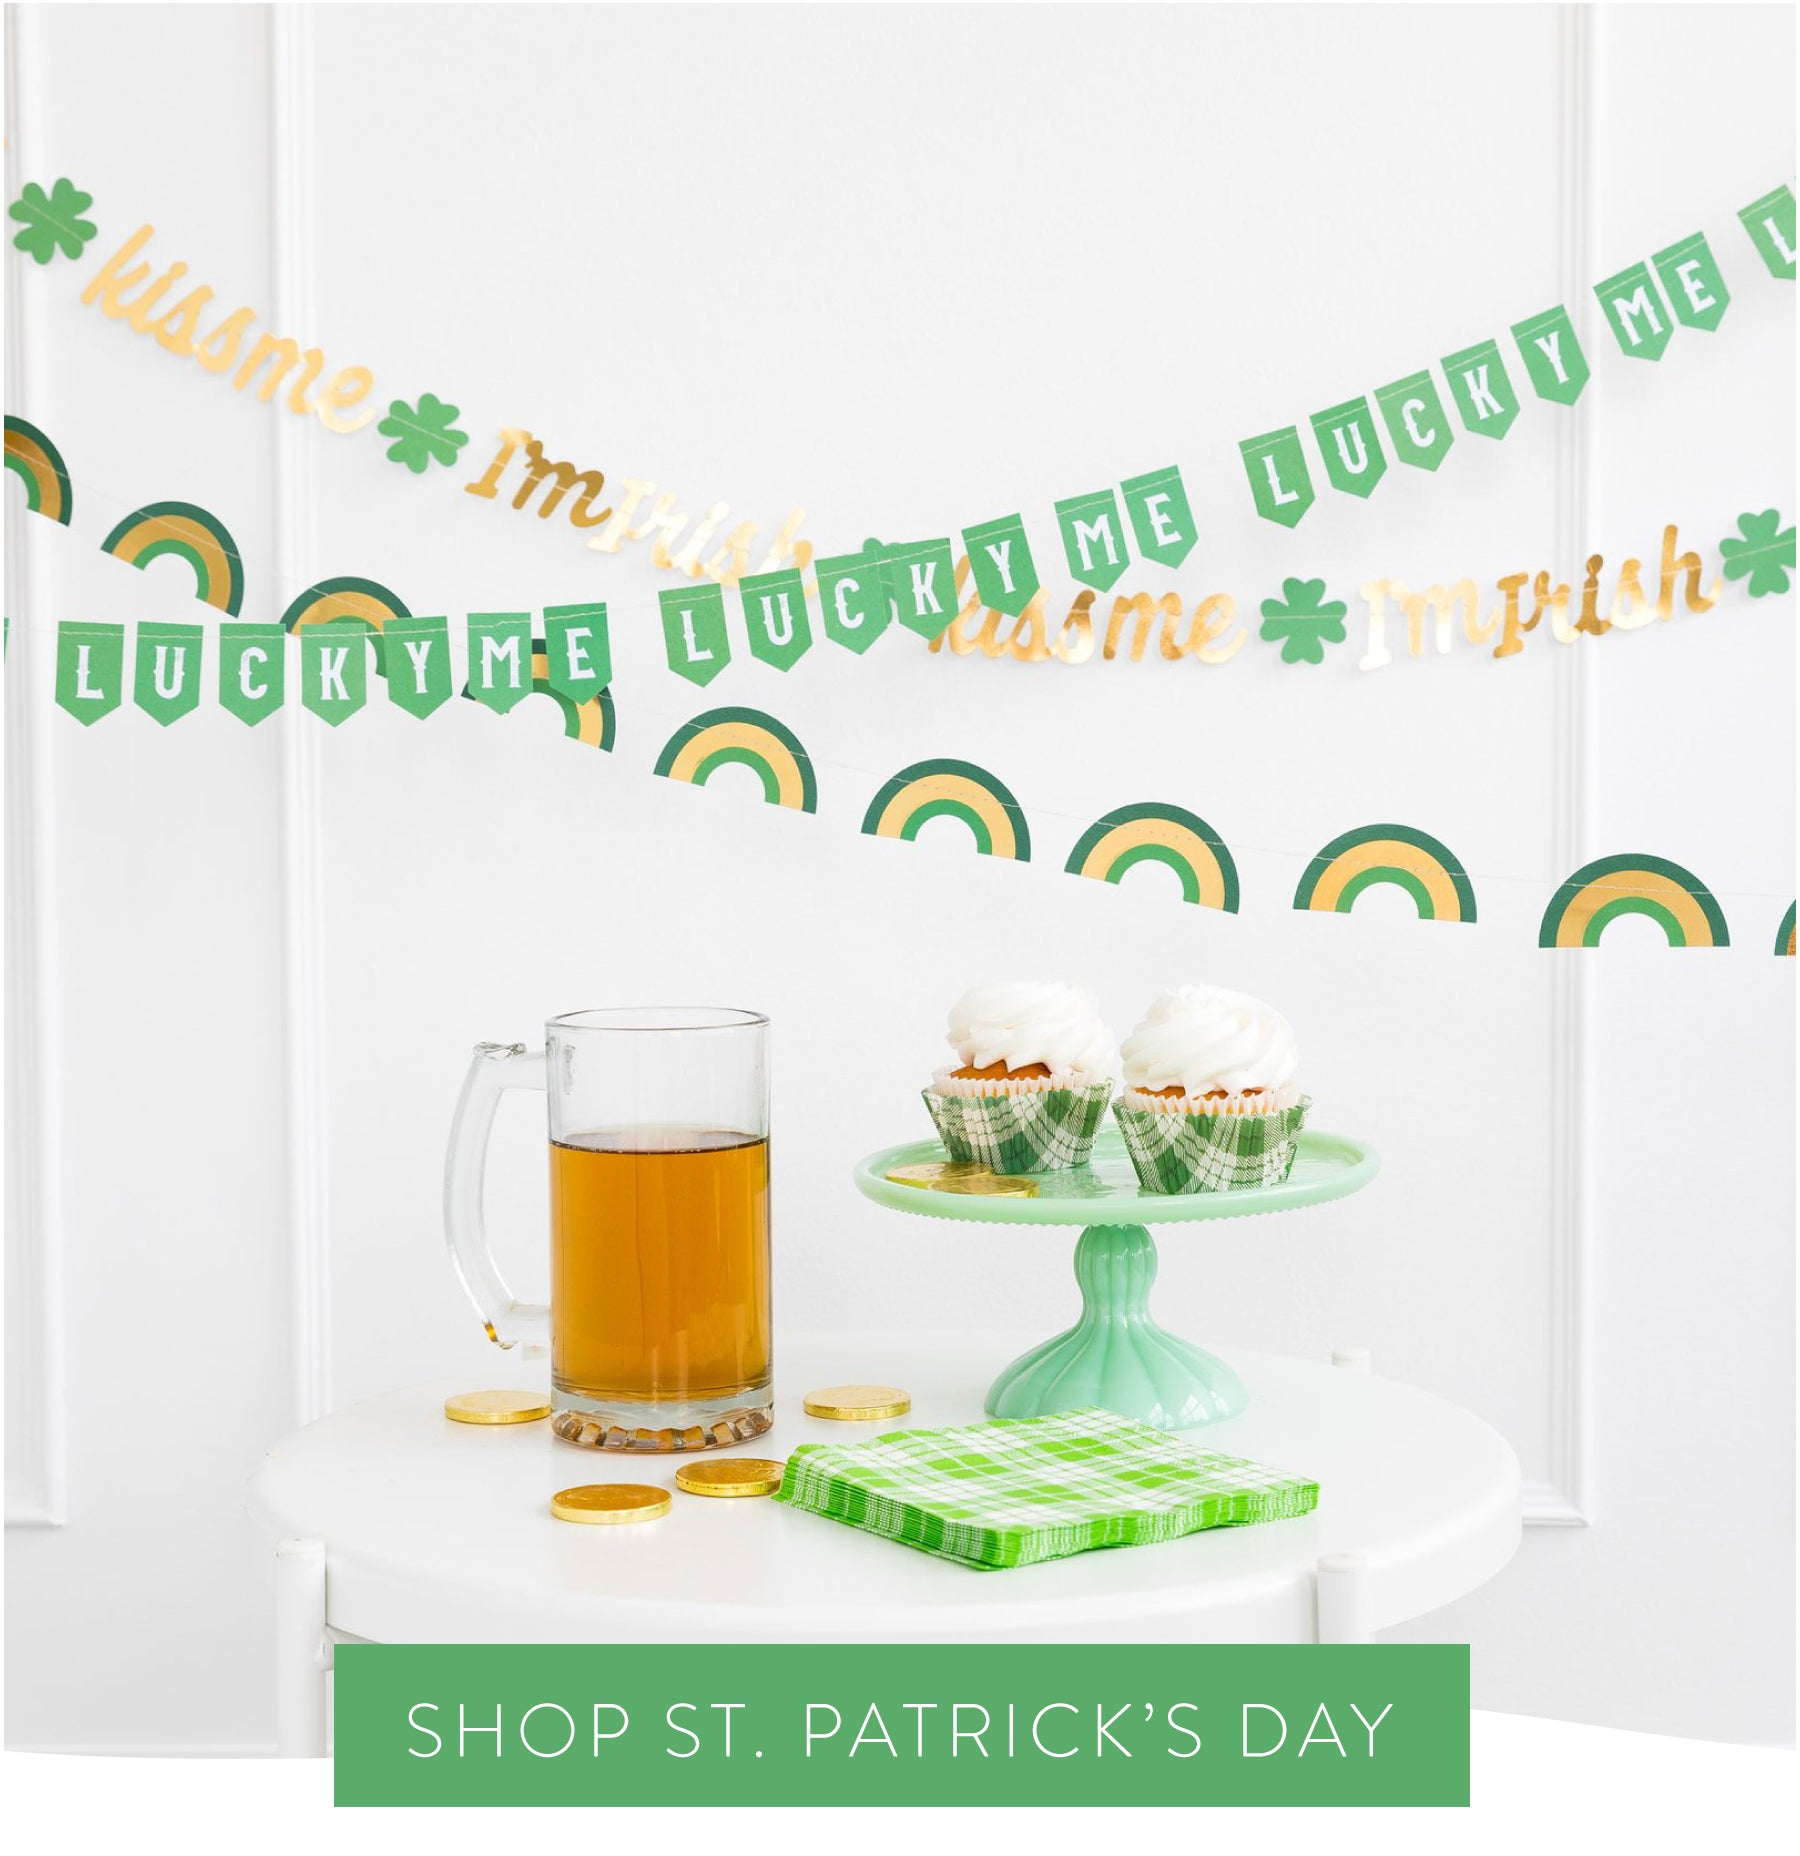 shop for St.Patrick's Day party supplies